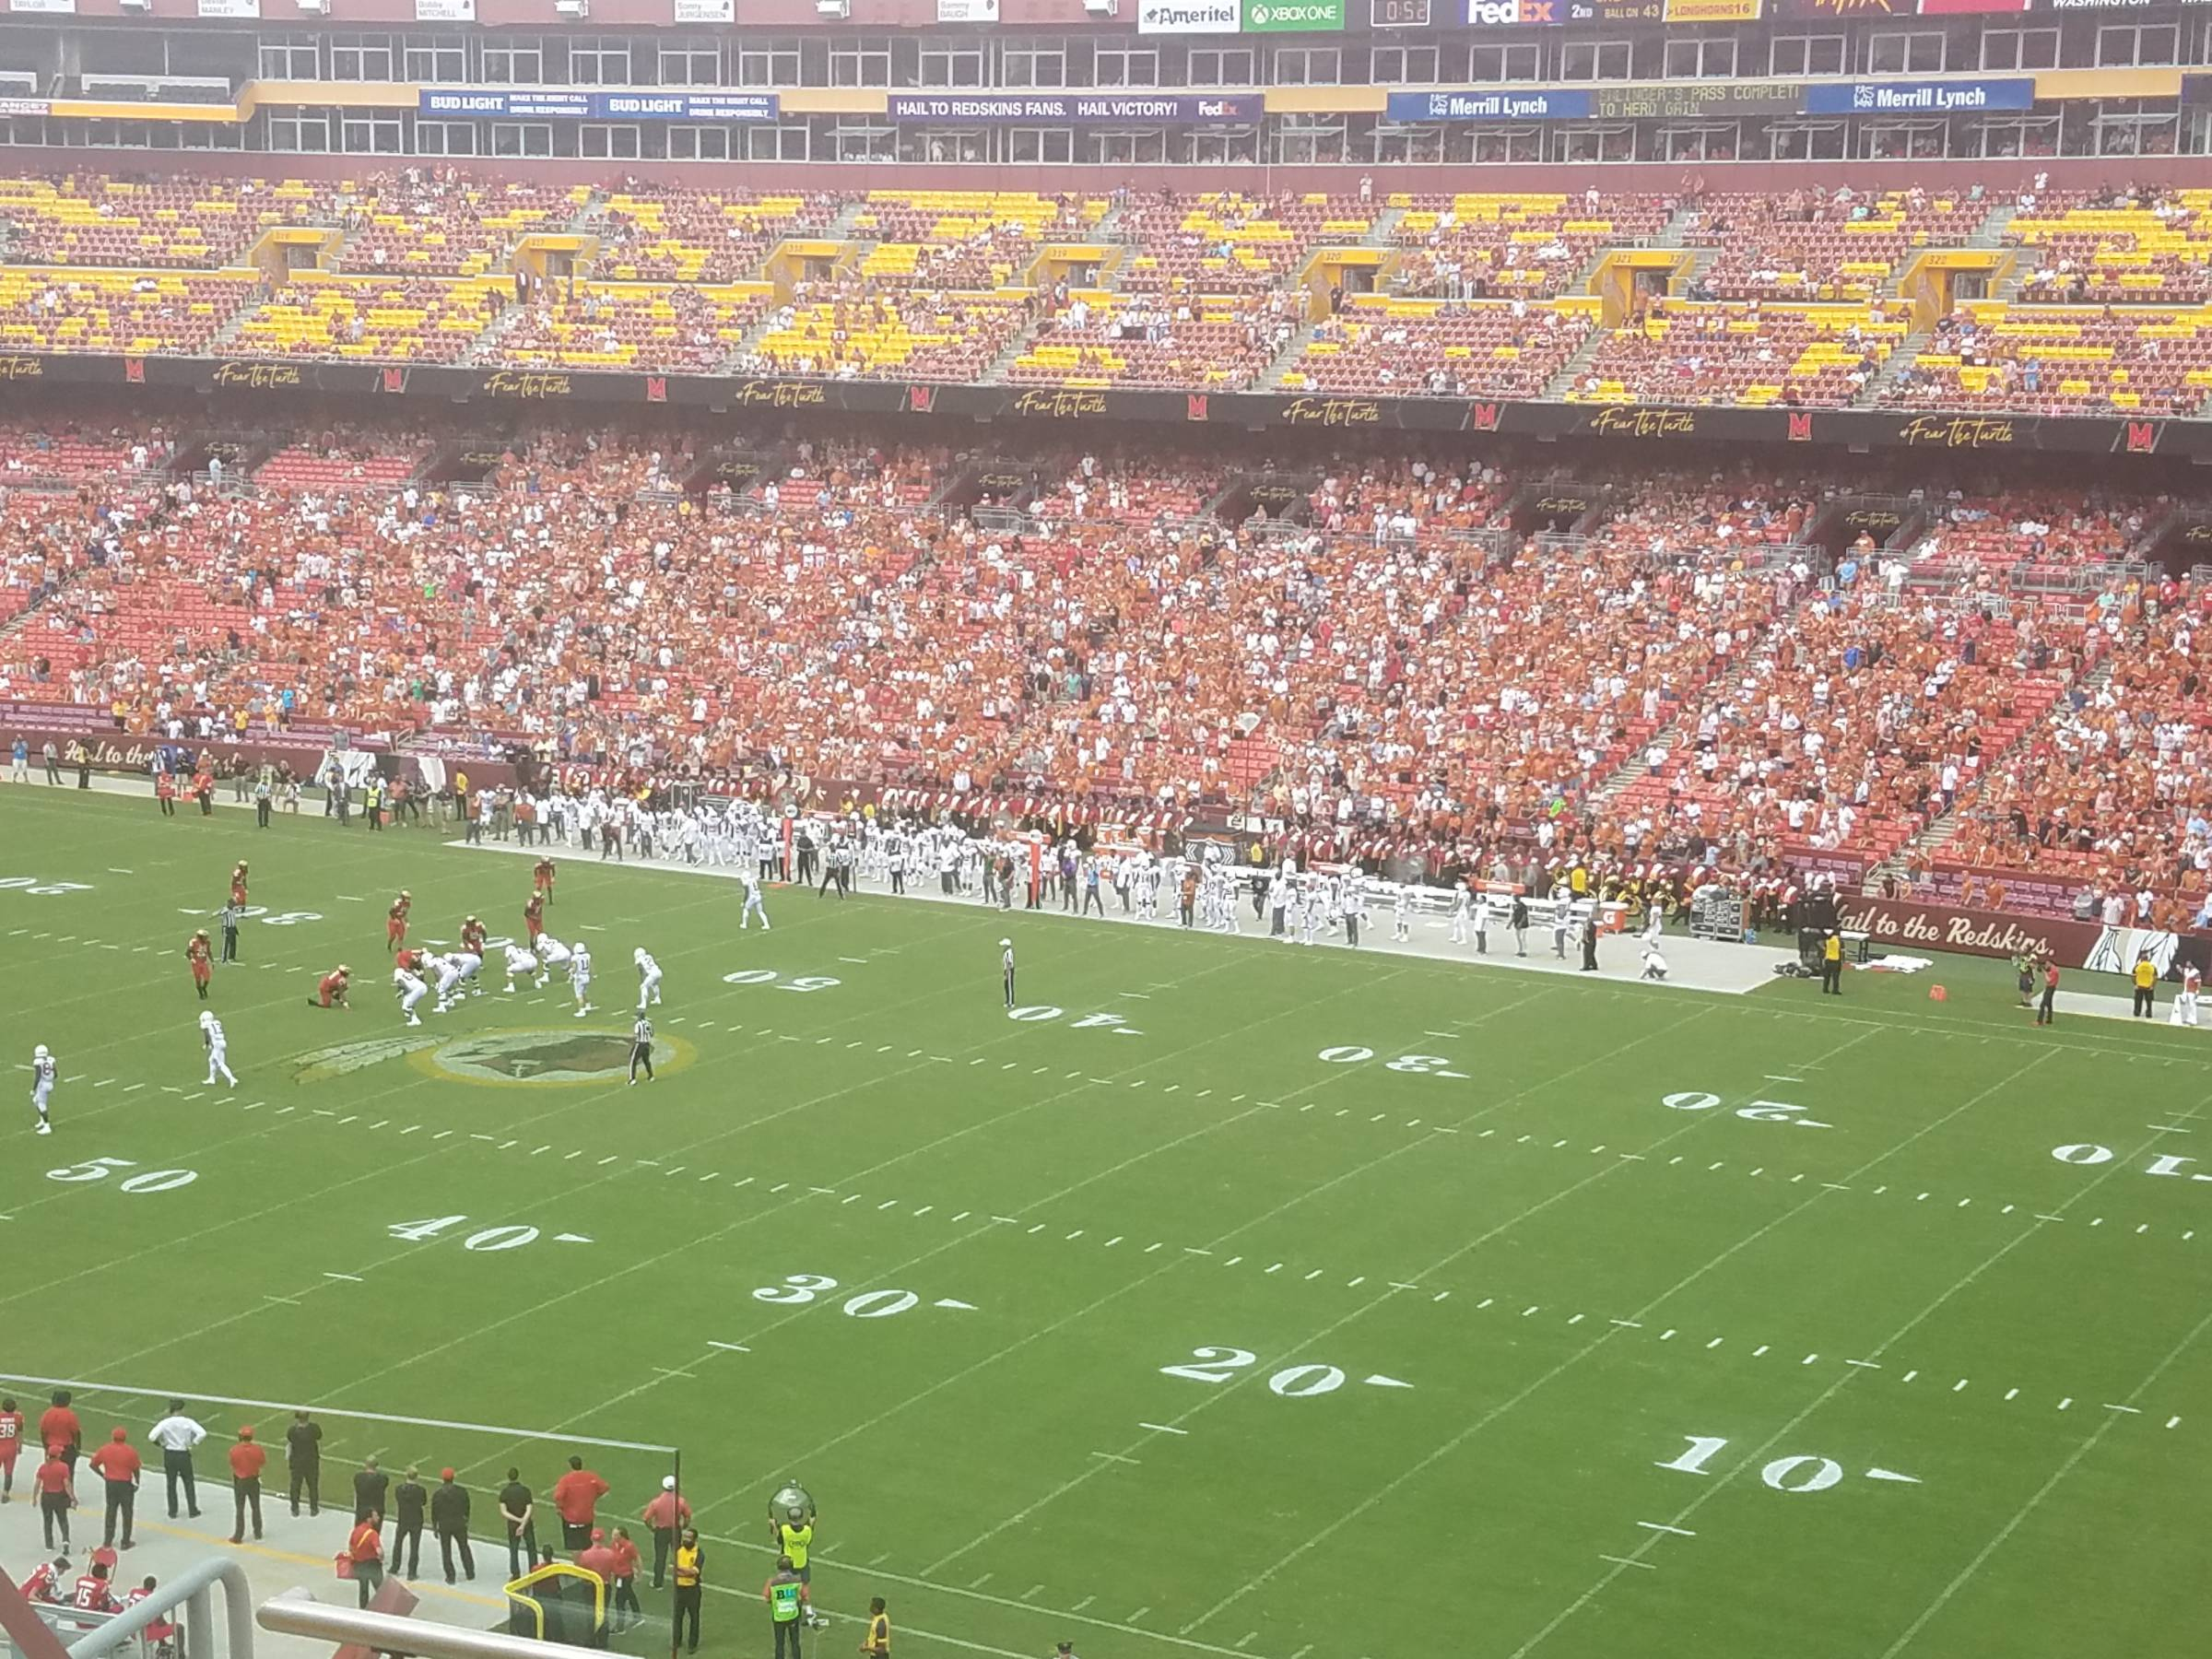 washington redskins seating guide - fedexfield - rateyourseats